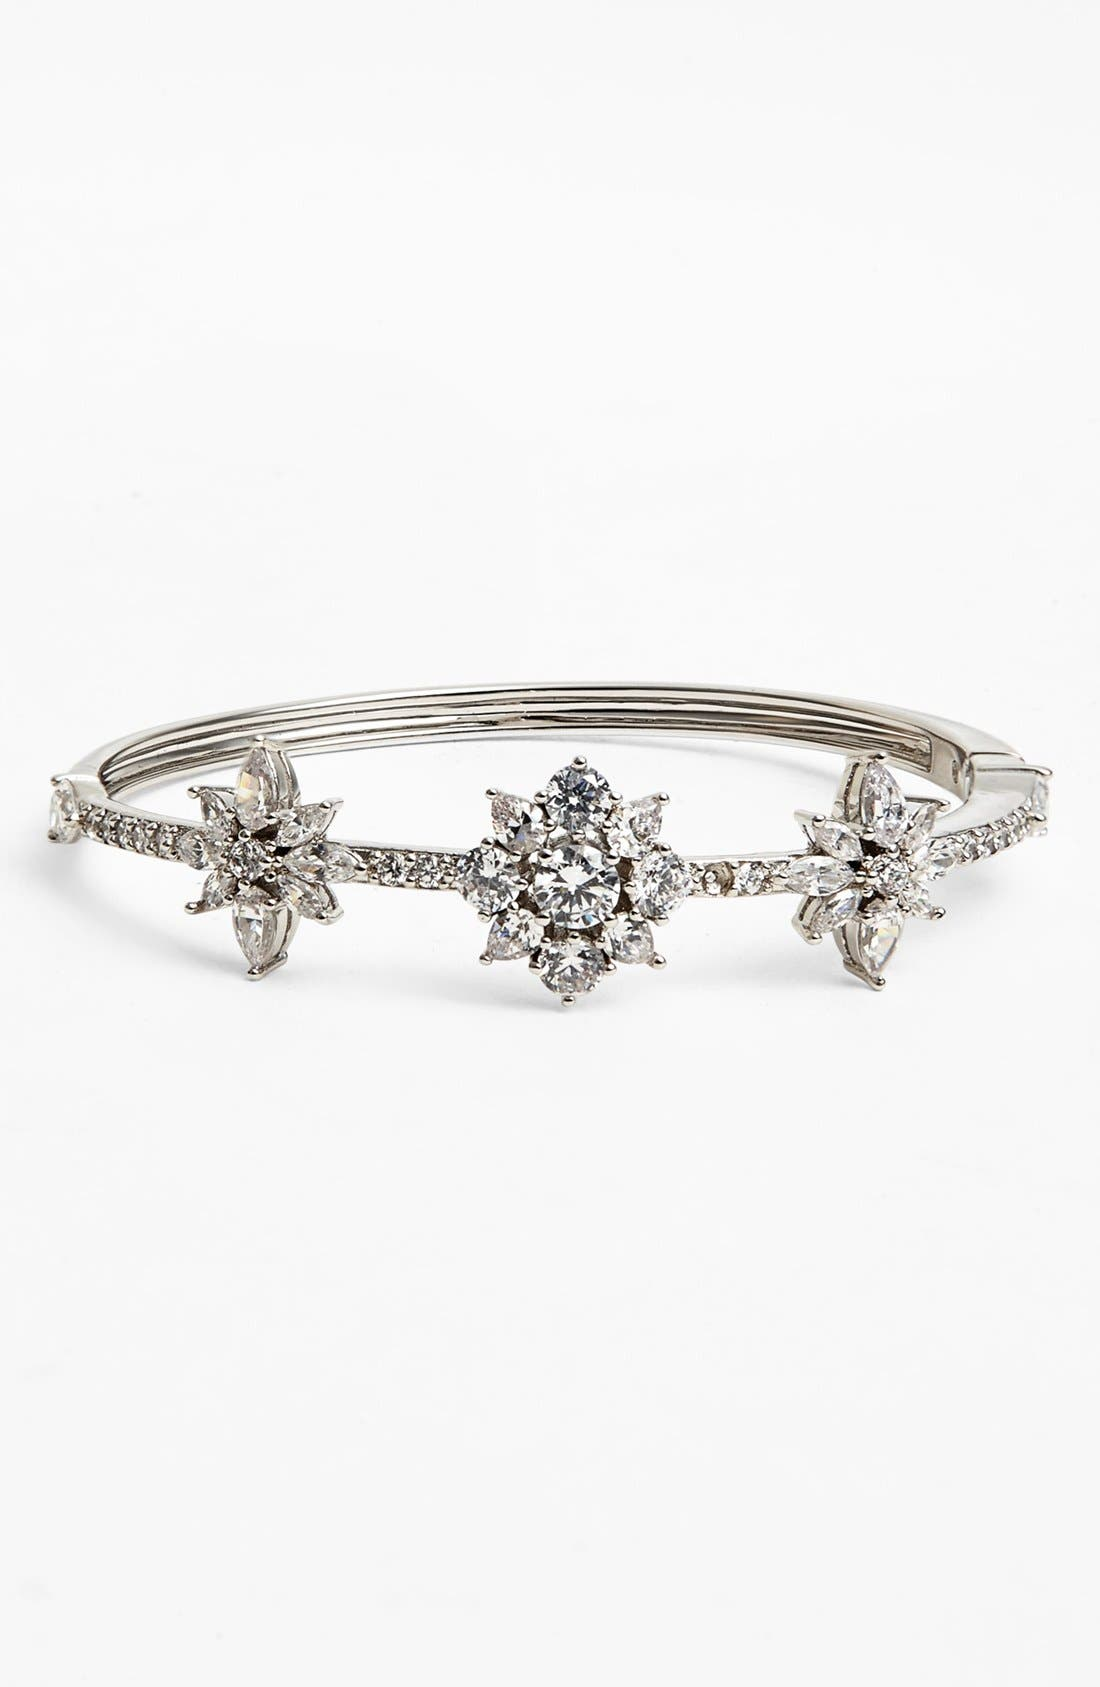 Main Image - Nadri 'Flores' Station Bangle Bracelet